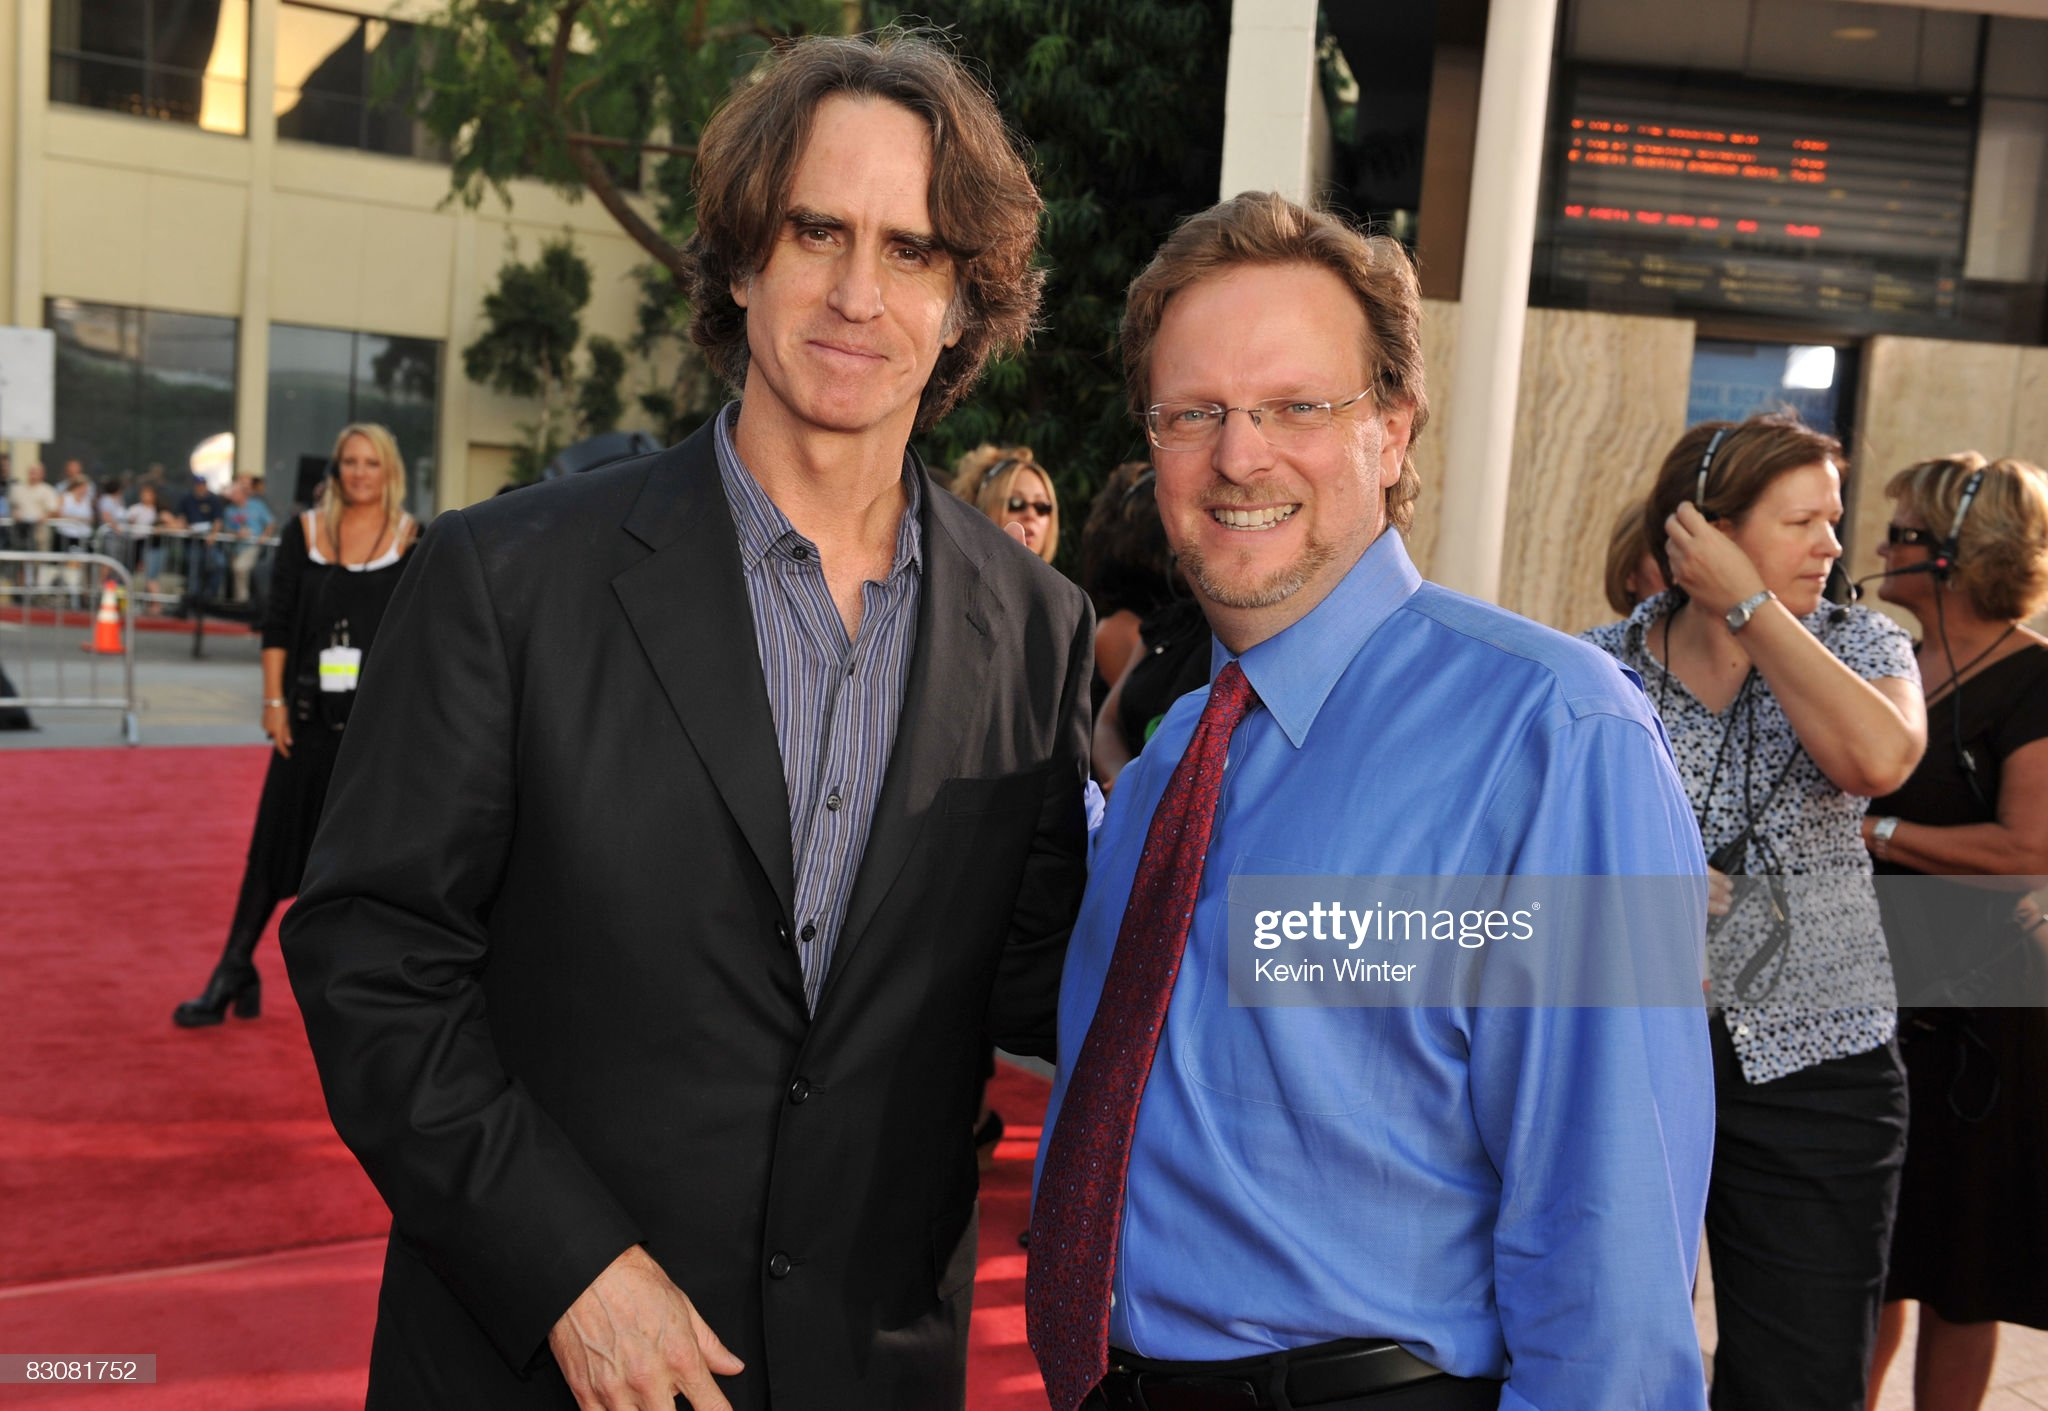 ¿Cuánto mide Bob Gazzale? - Real height Directorproducer-jay-roach-and-president-ceo-afi-bob-gazzale-arrive-picture-id83081752?s=2048x2048